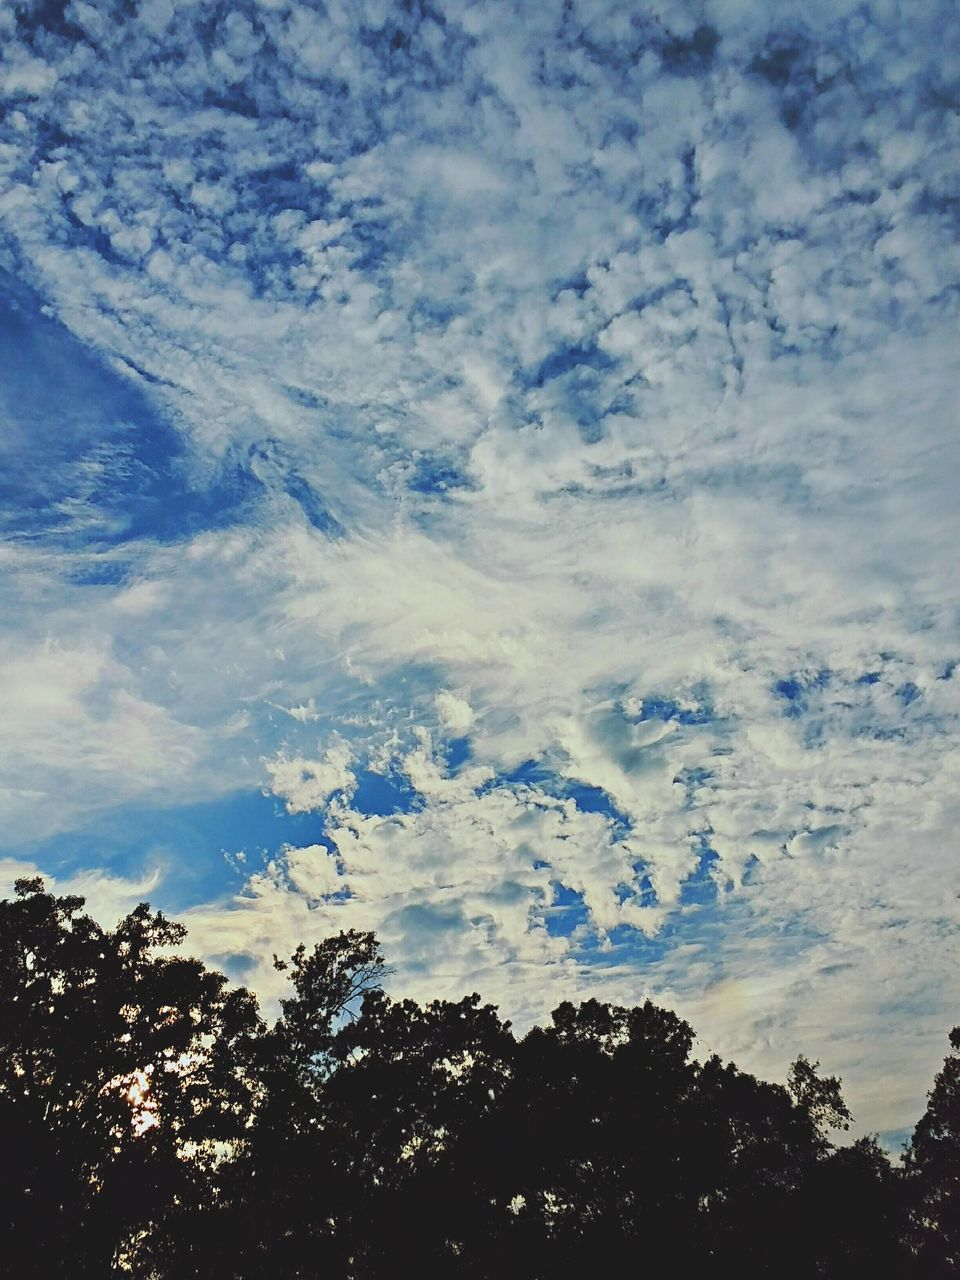 sky, beauty in nature, nature, tree, low angle view, tranquility, no people, silhouette, scenics, outdoors, cloud - sky, tranquil scene, day, blue, growth